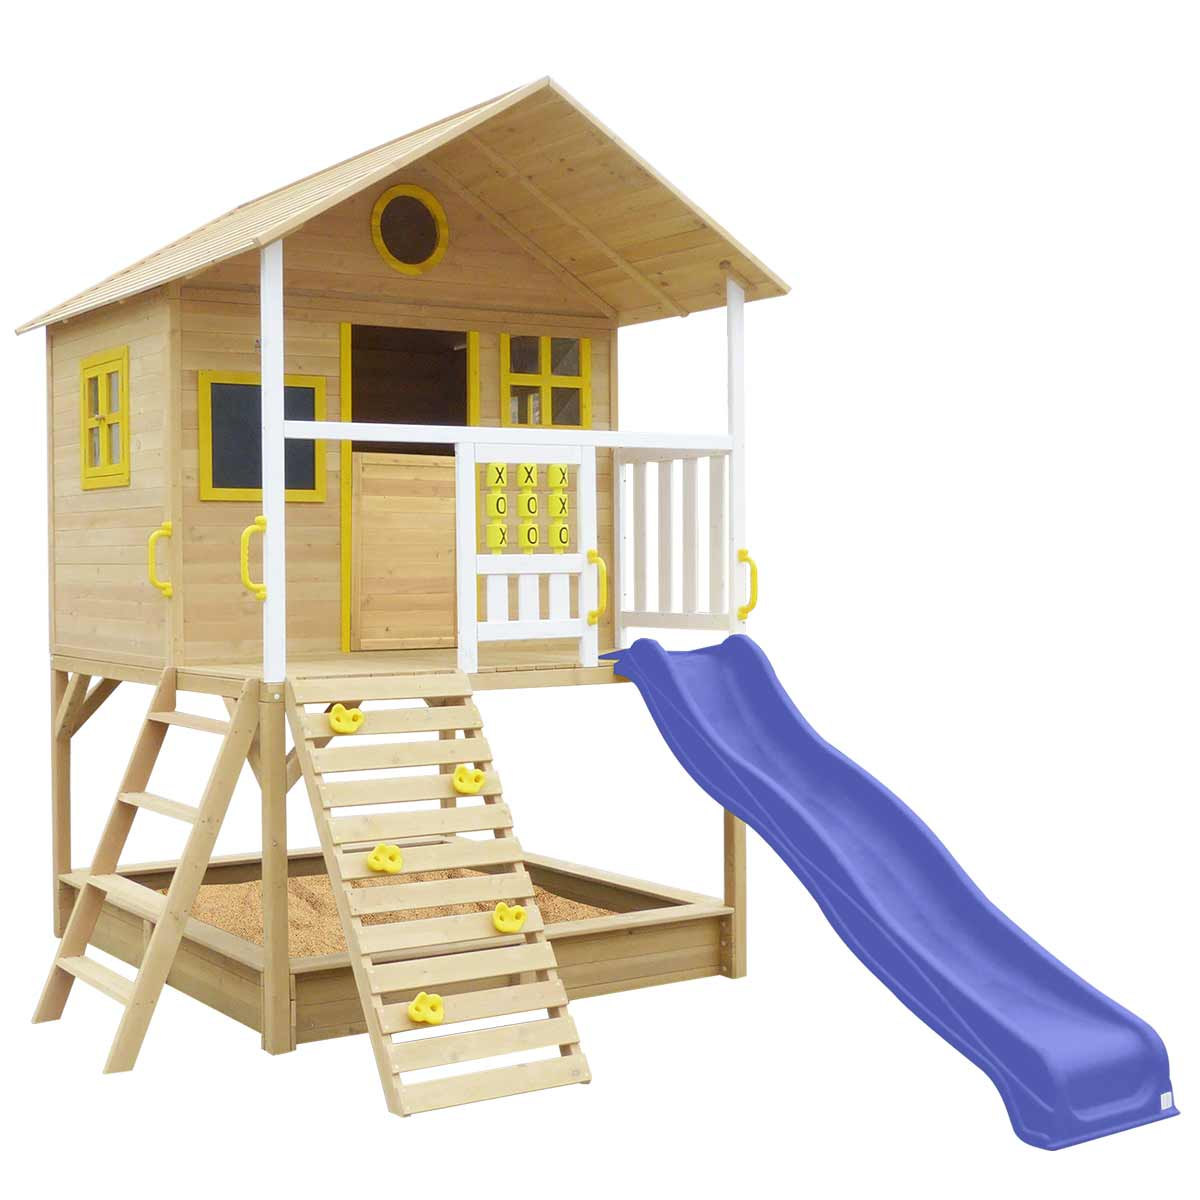 Warrigal Cubby House set- Blue Slide